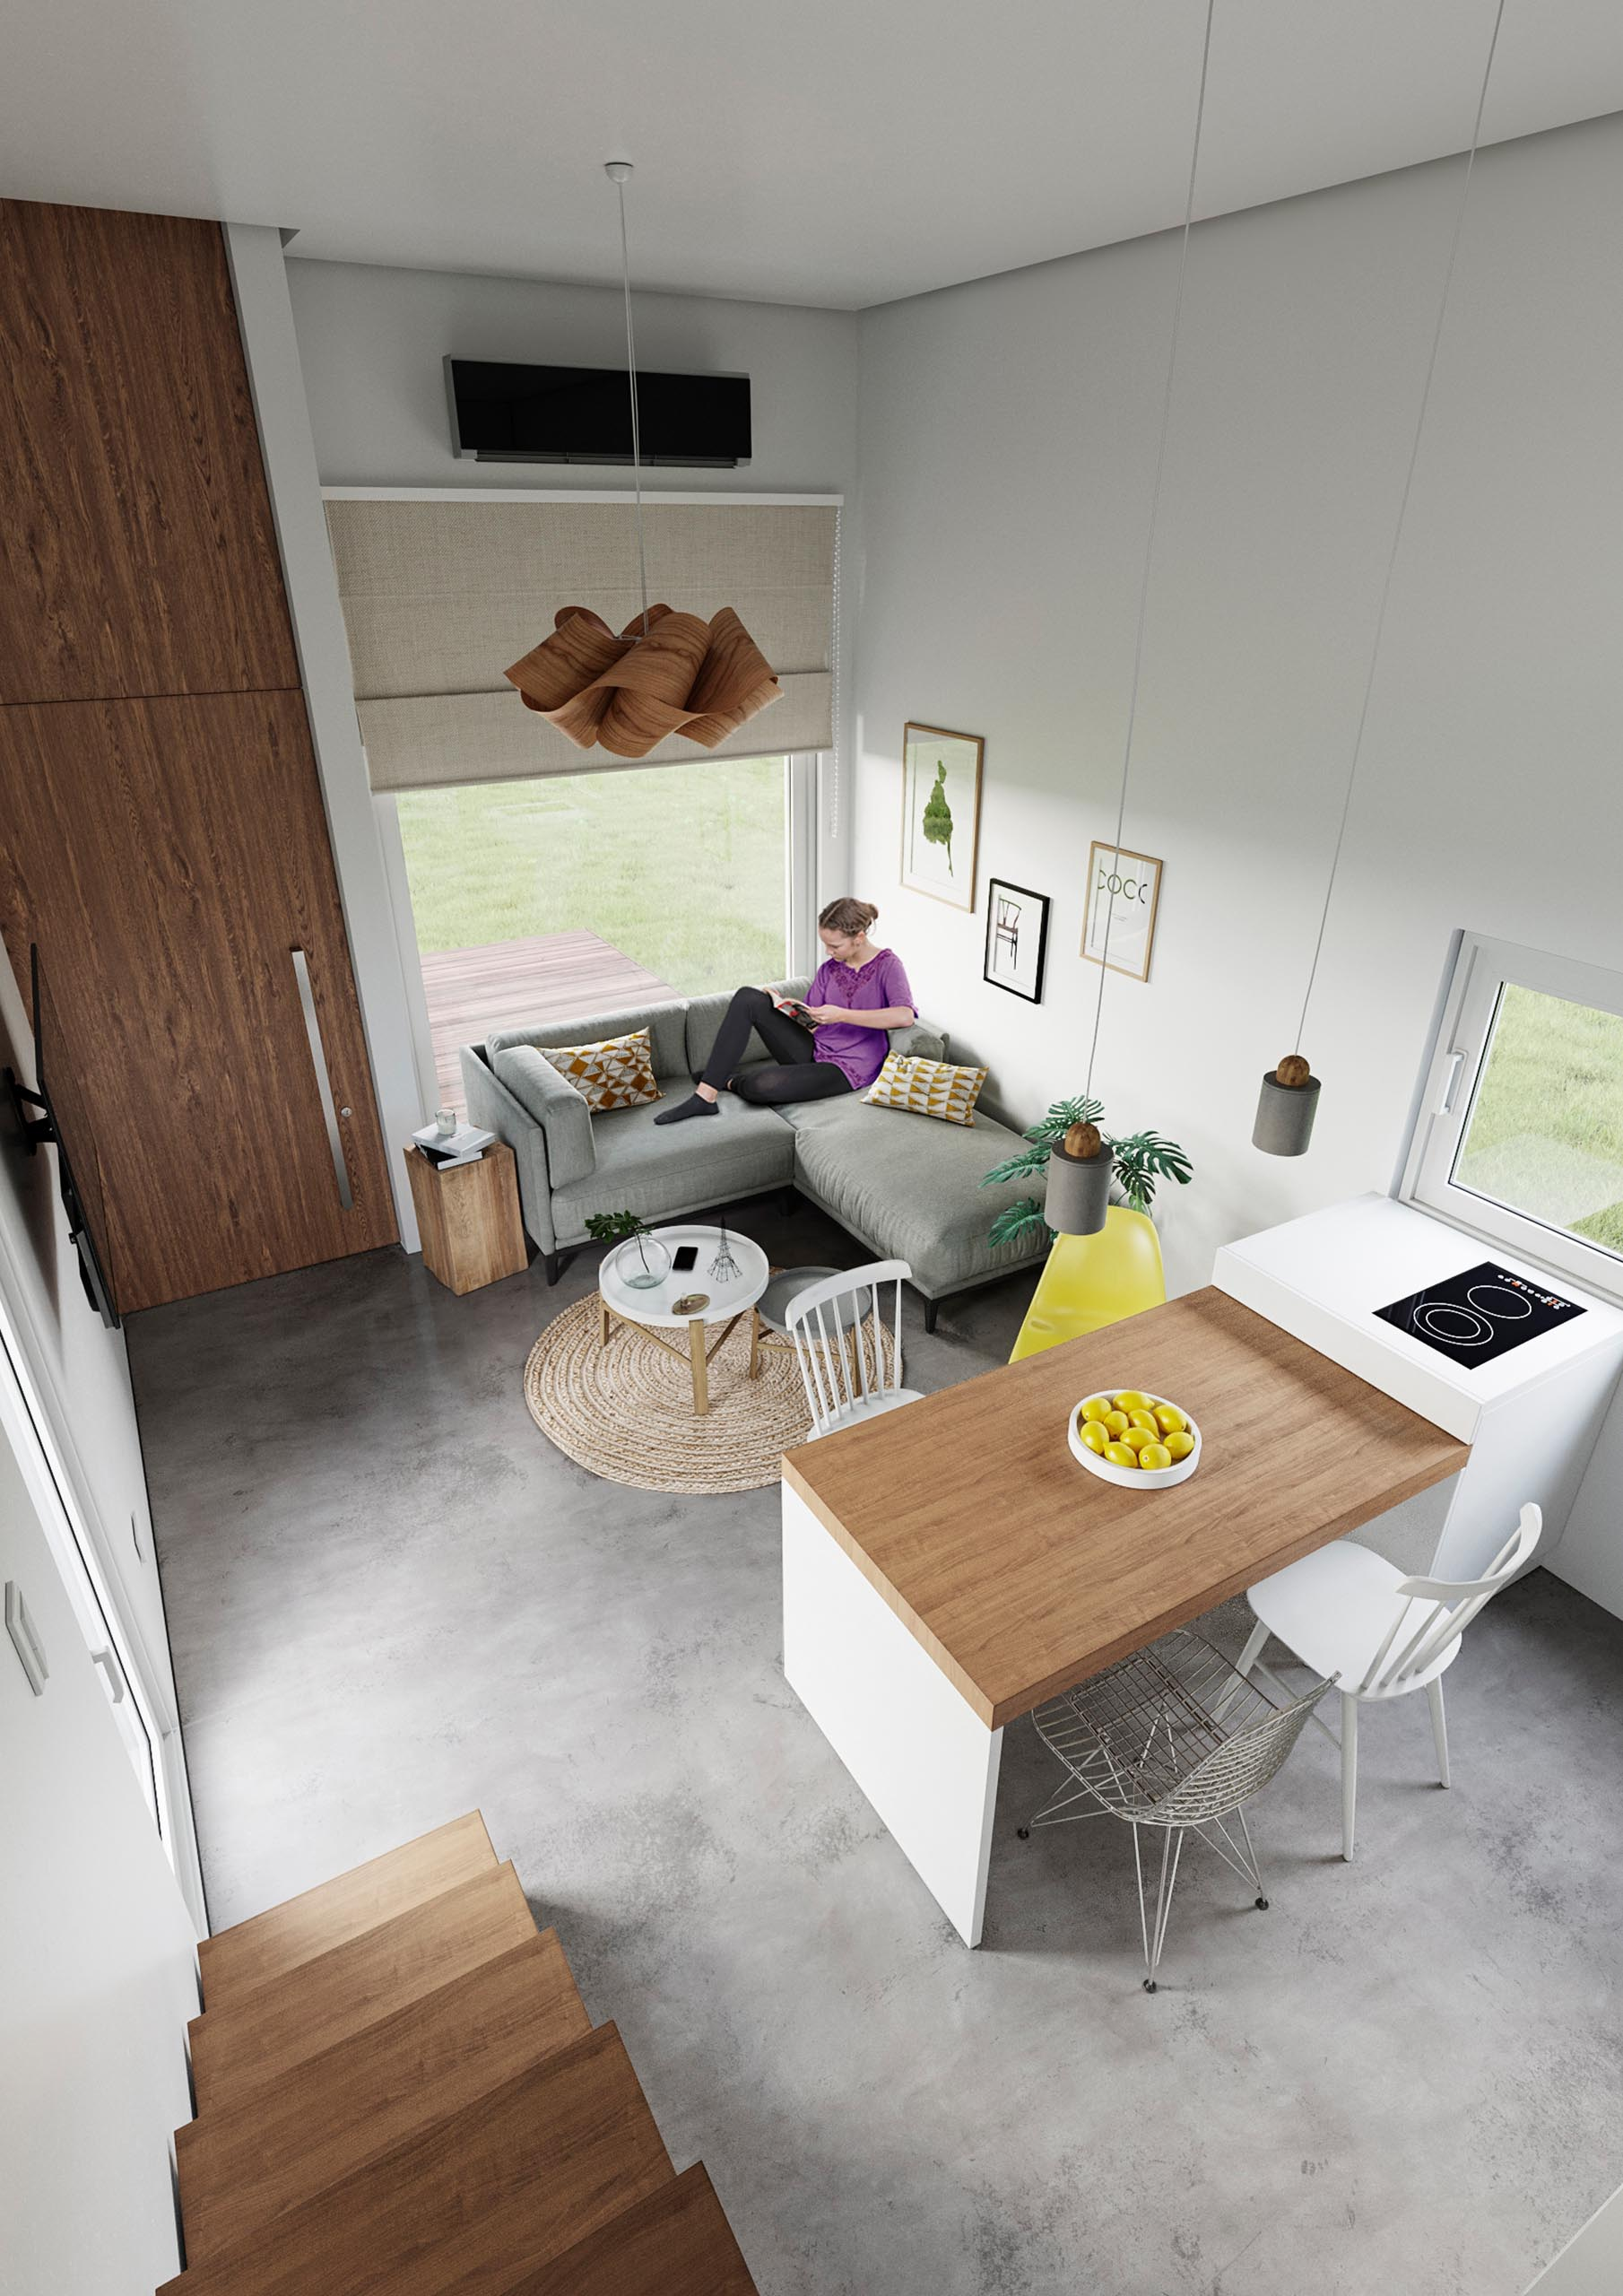 A modern precast concrete relocatable tiny home with an open plan living room, dining area, and kitchen.